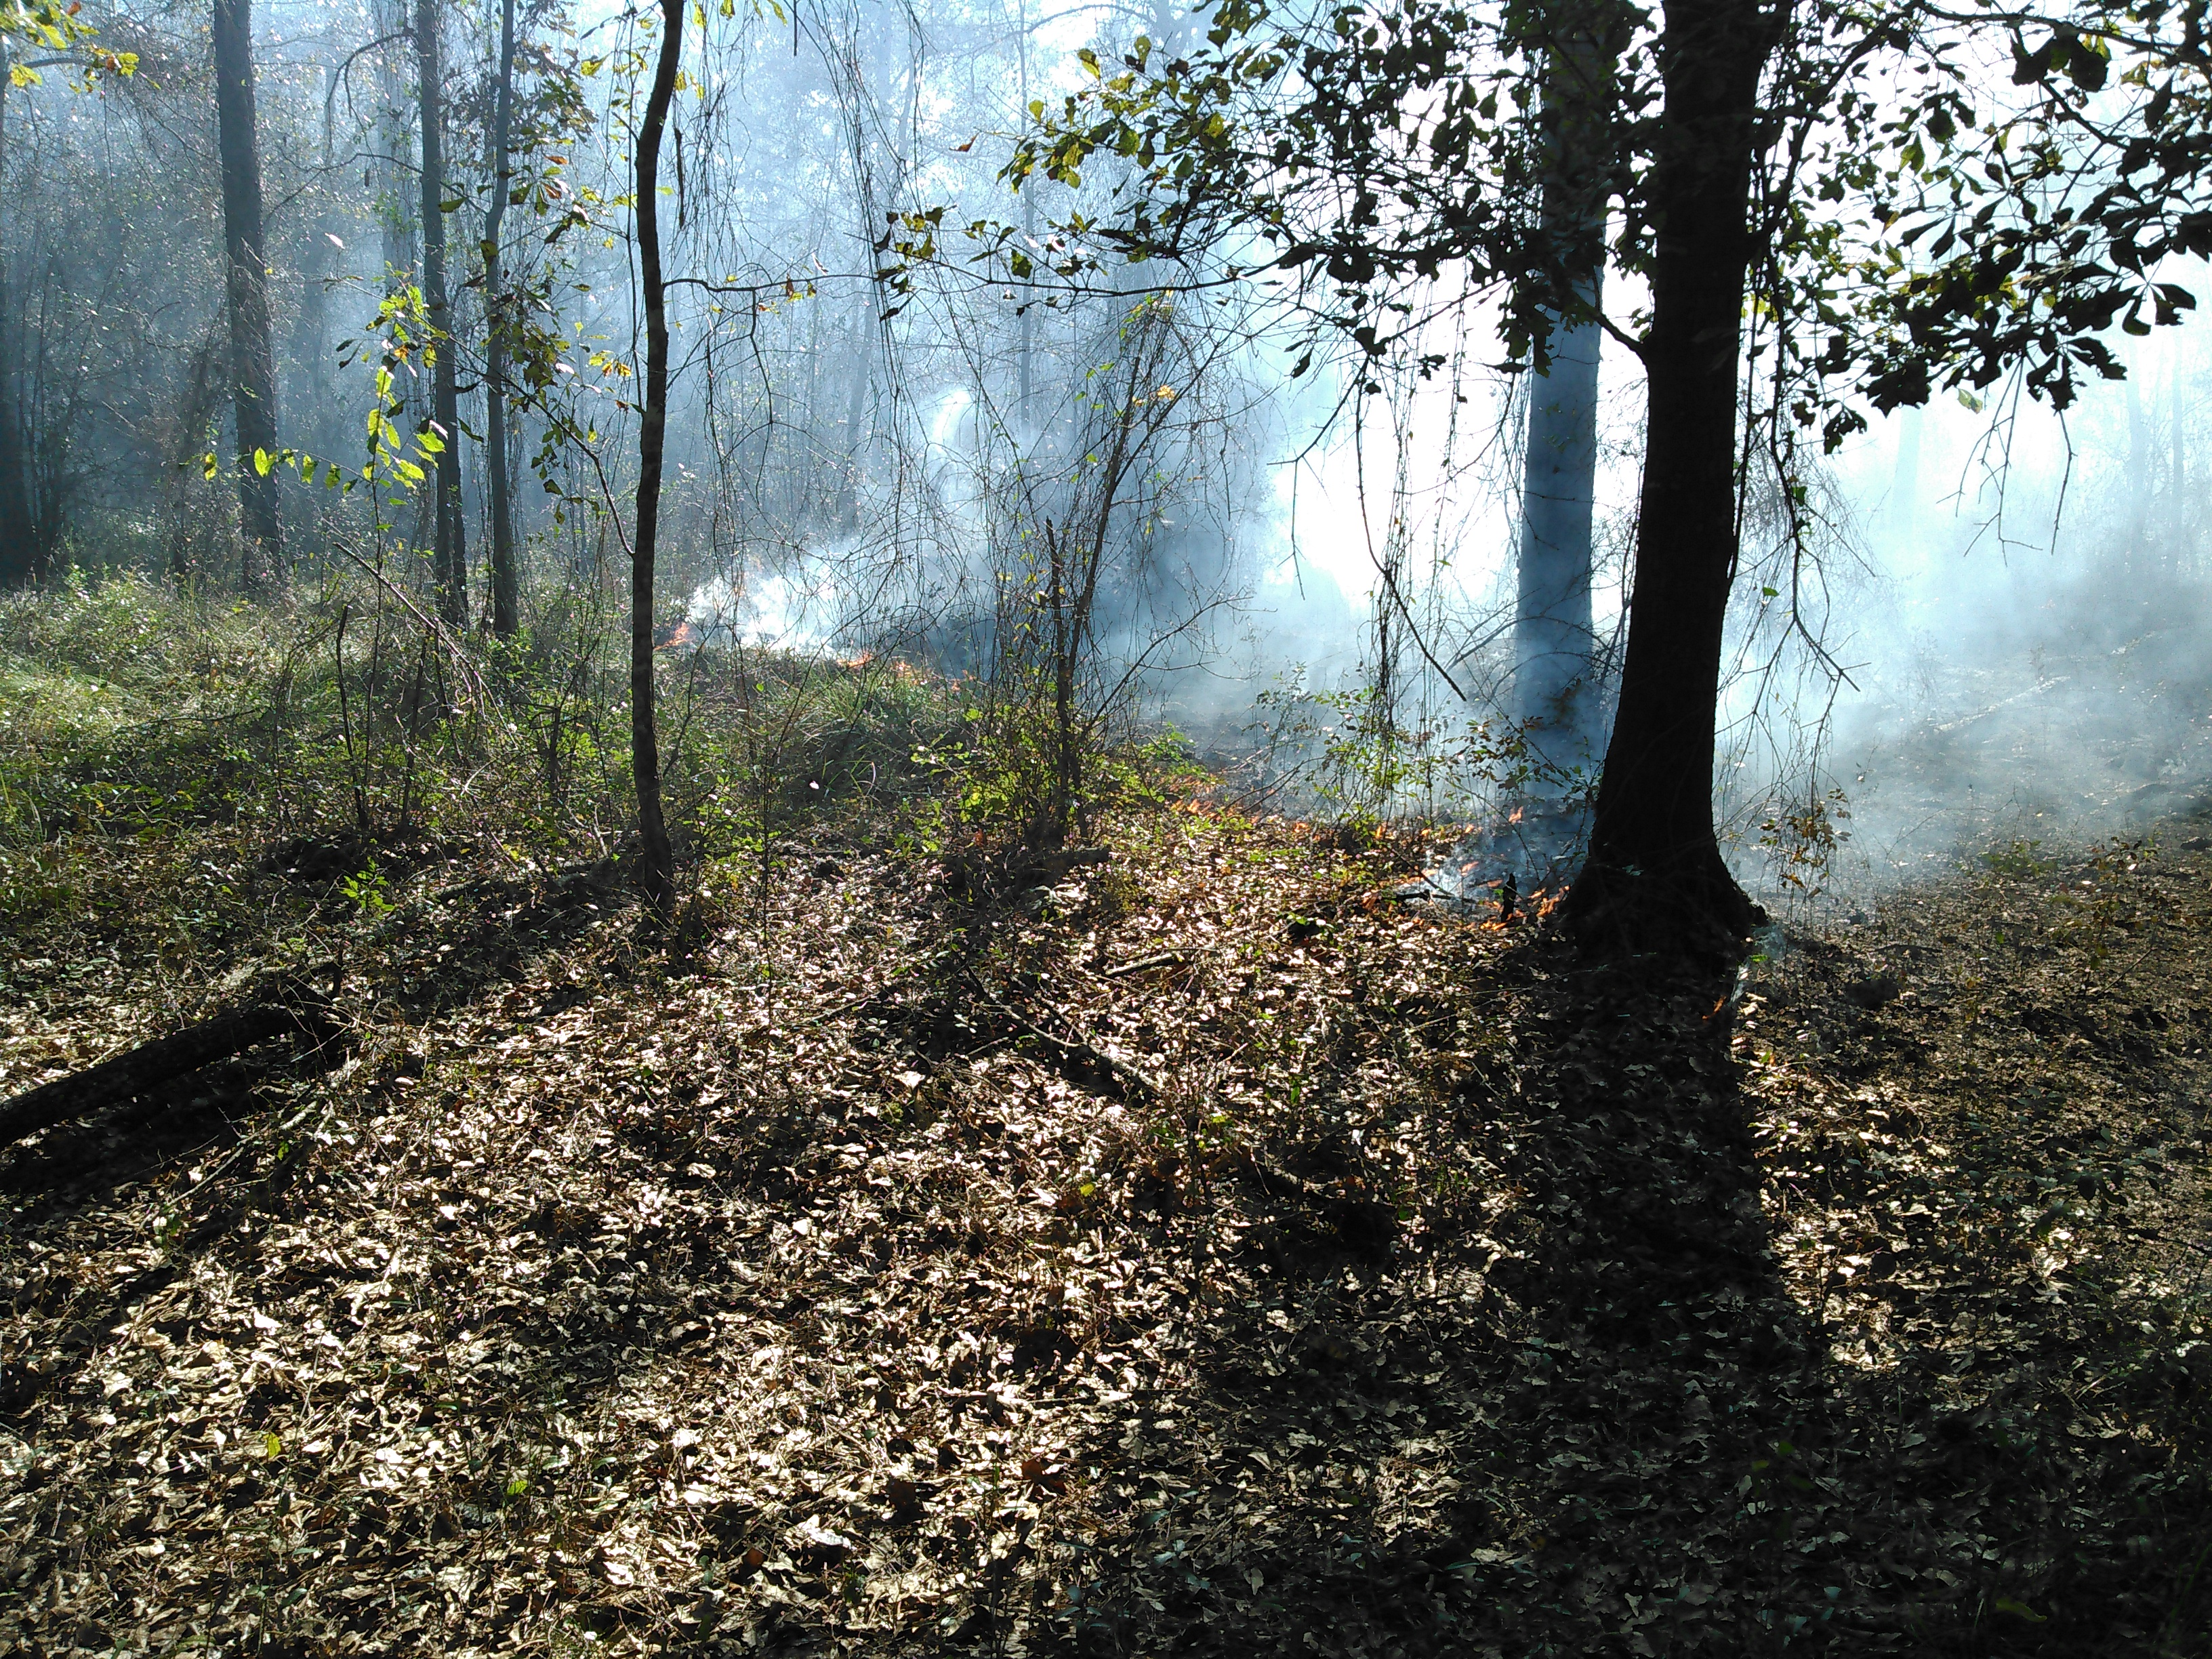 3264x2448 Diagonal fire, in Prescribed burn, by John S. Quarterman, for OkraParadiseFarms.com, 5 December 2015